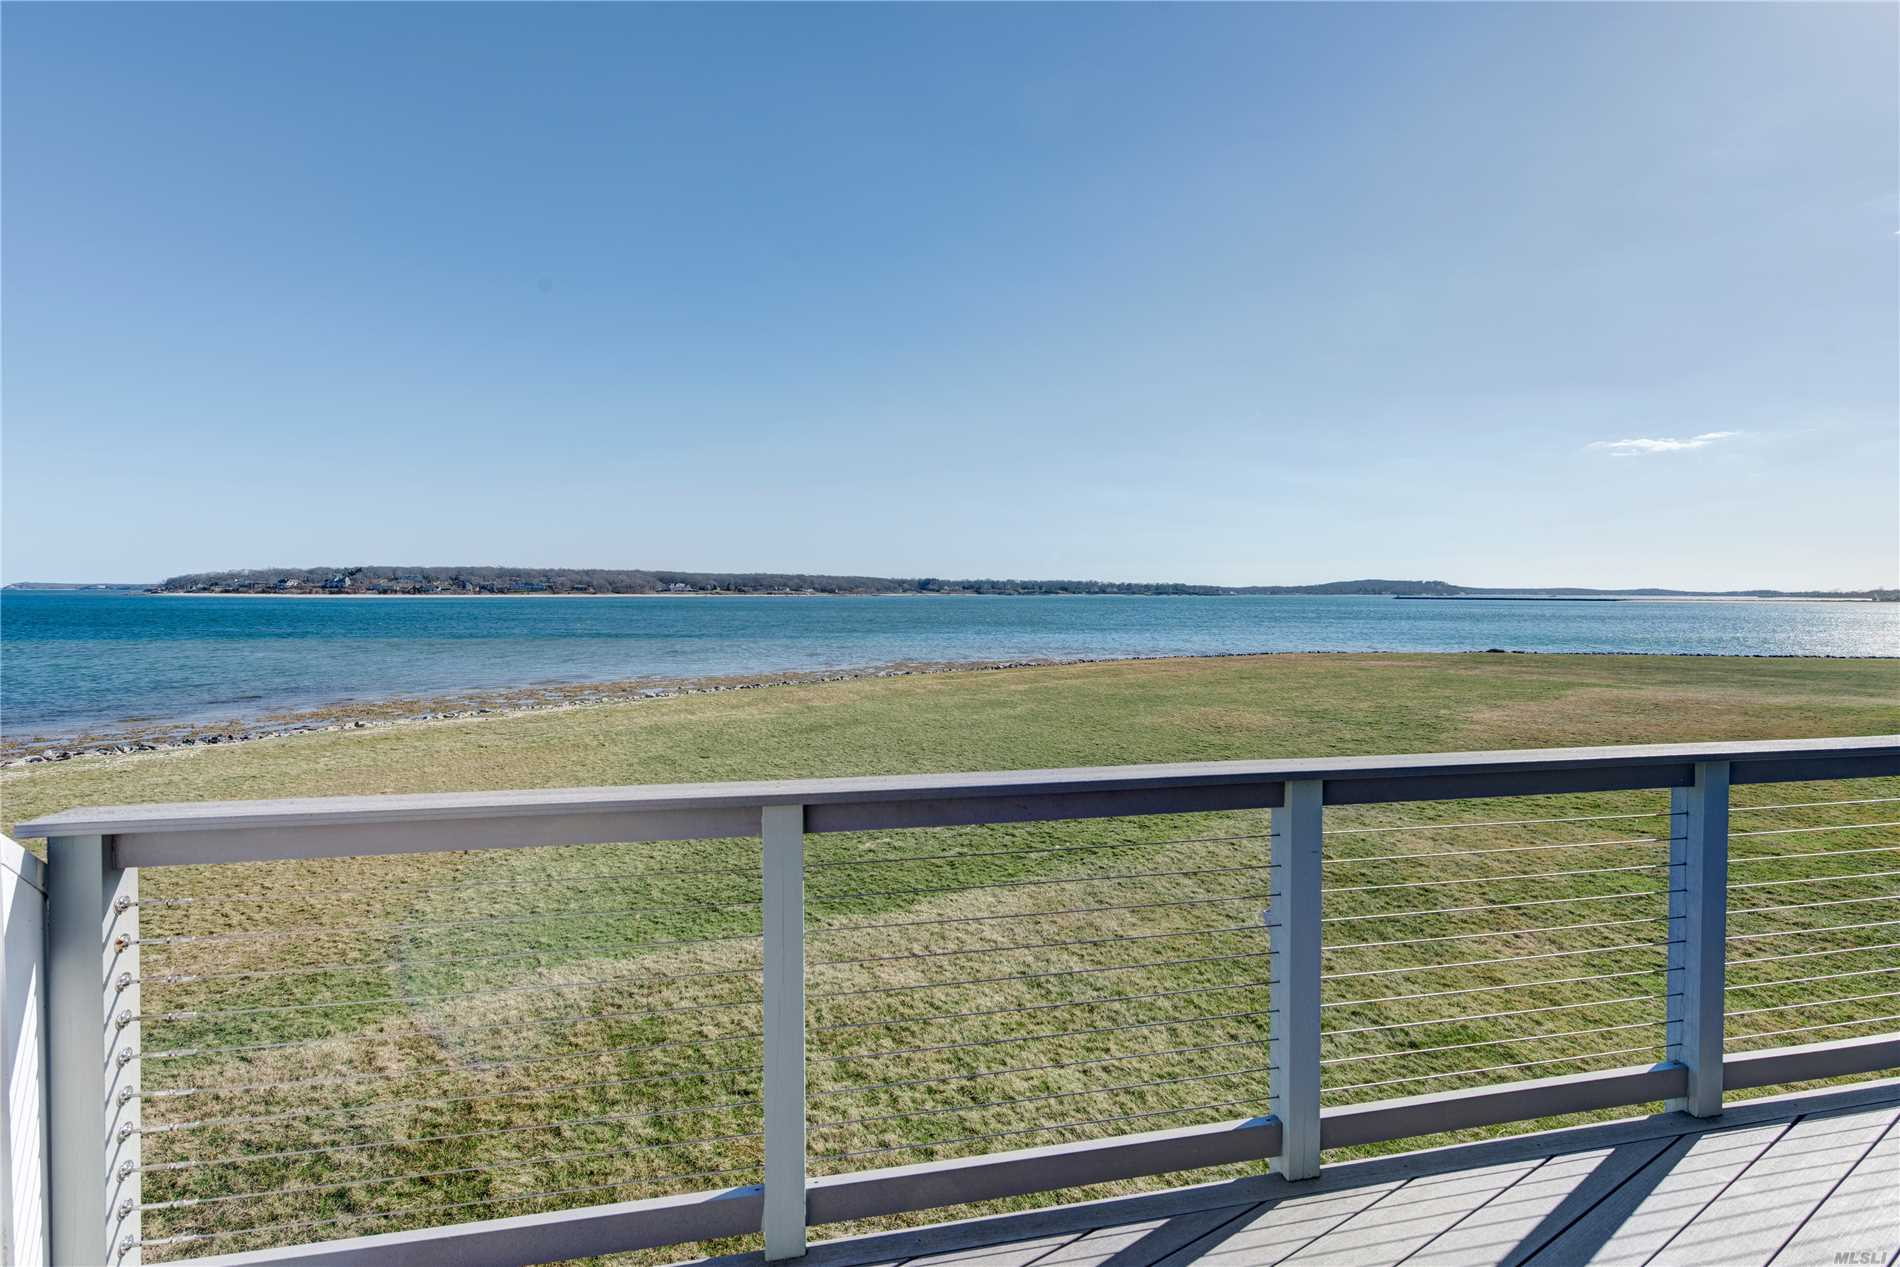 Rare Upper Corner Unit In Cleaves Point Bay Front Condo Community Available For Summer 2019 And Possibly For An Extended Season. Enjoy Direct Bay Front Views, Marina, Sandy Beach, Pool, 2 Tennis Courts, Gym And So Much More!